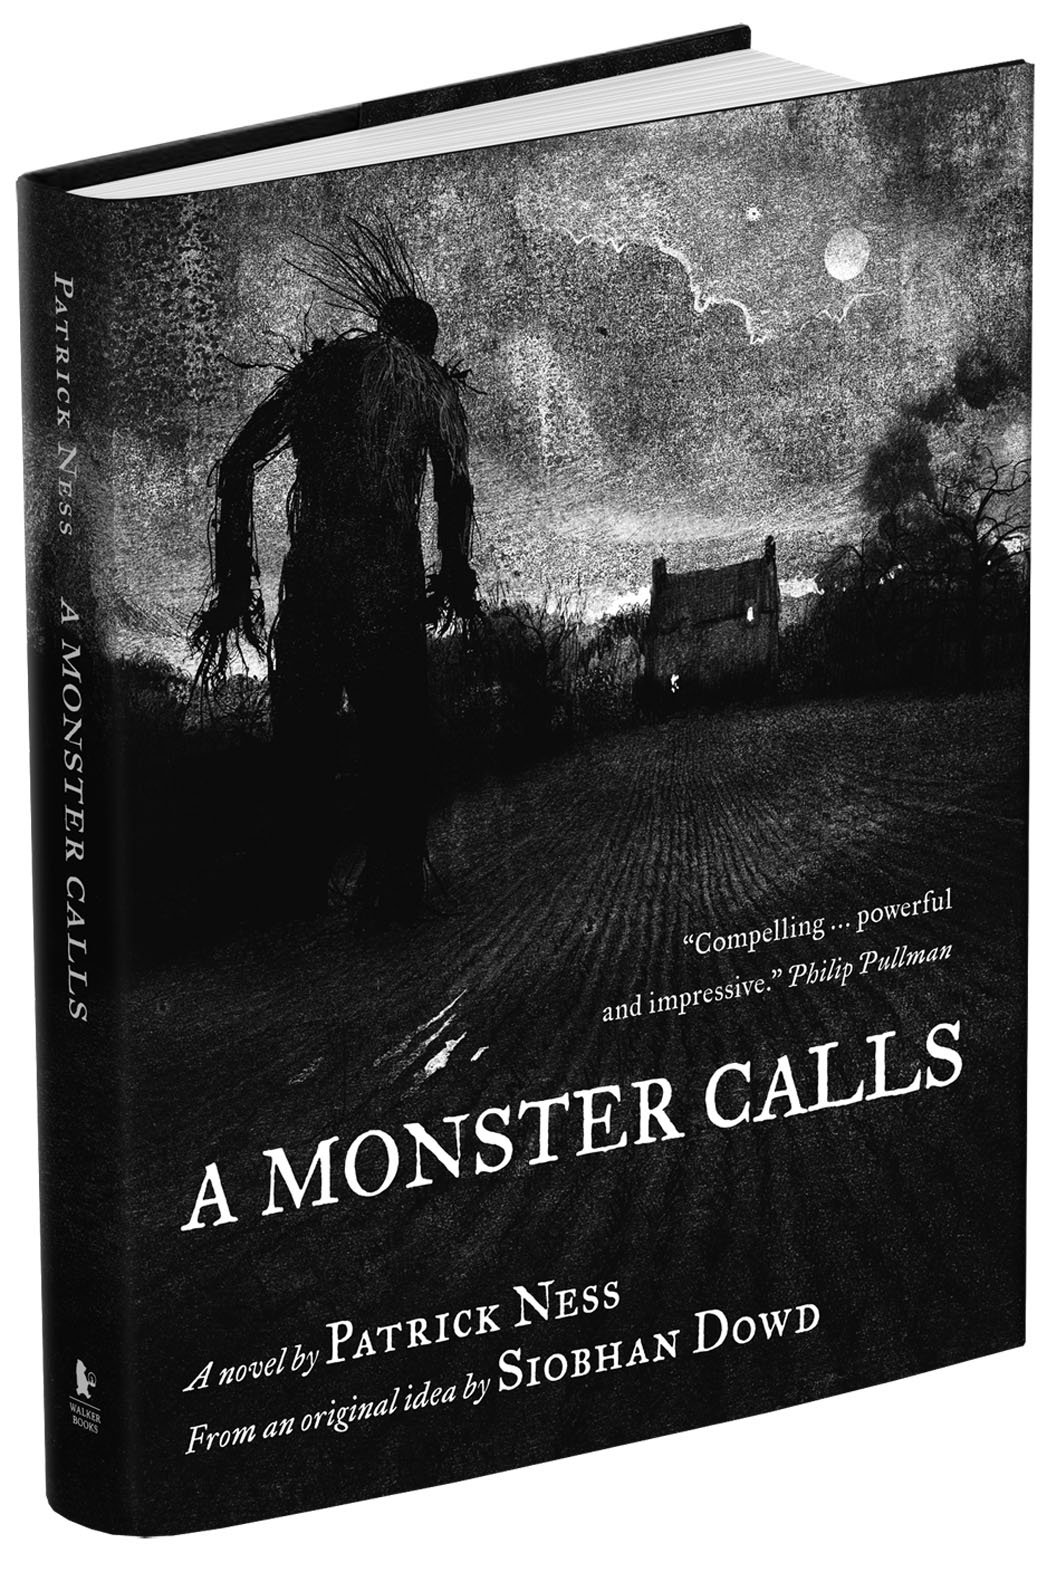 a_monster_calls_patrick_ness